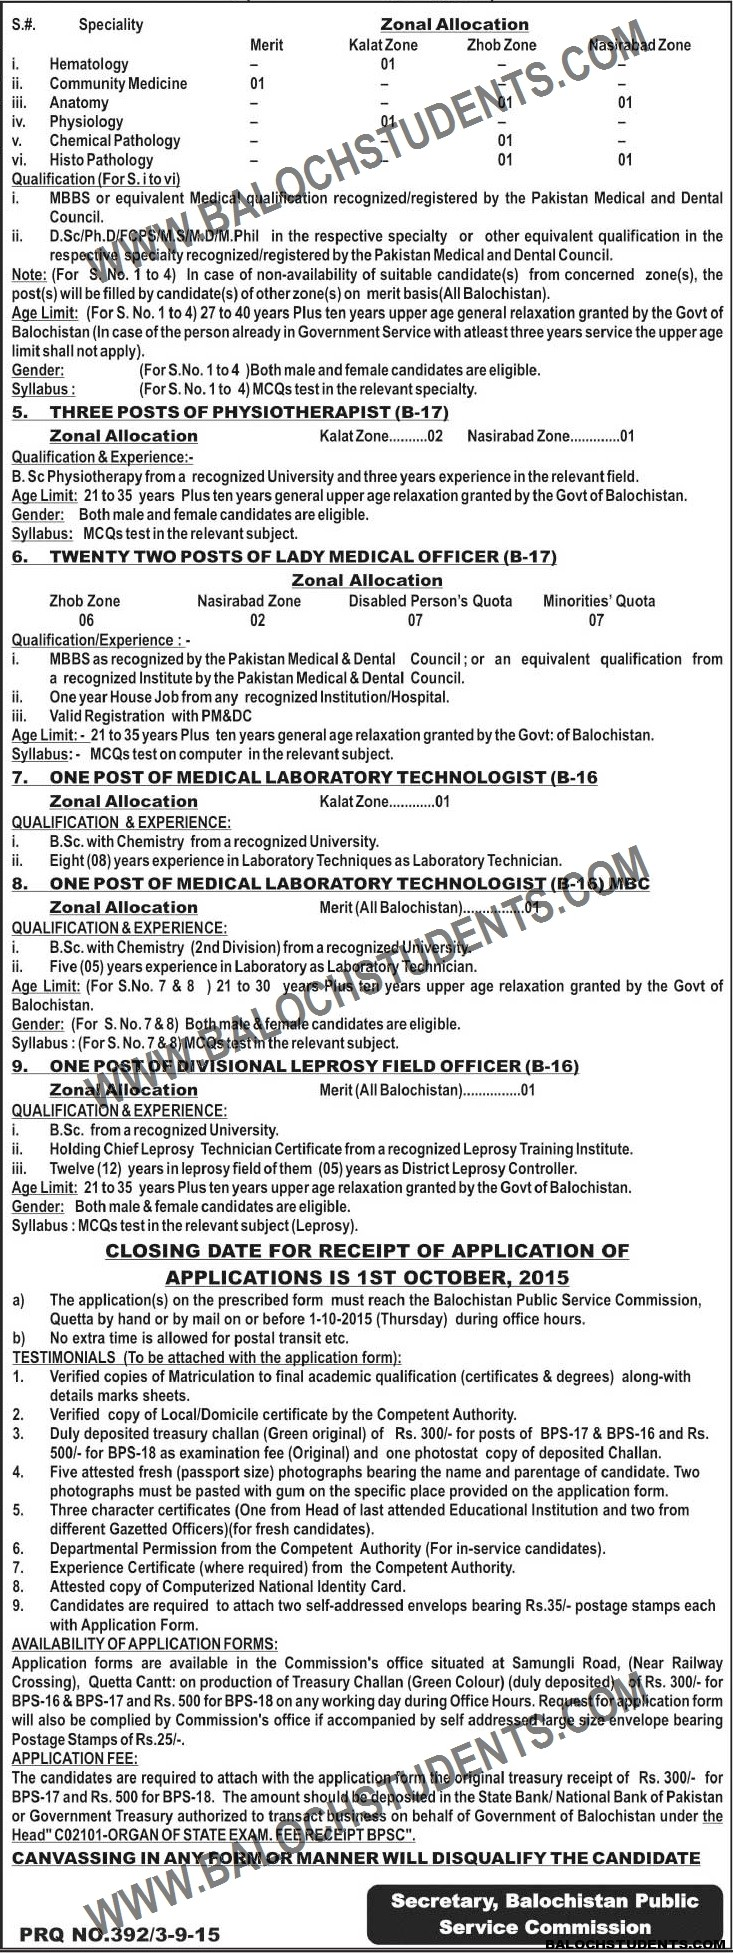 Jobs Opportunities- Balochistan Public Service Commission- Advertisement No. 132015 (2)